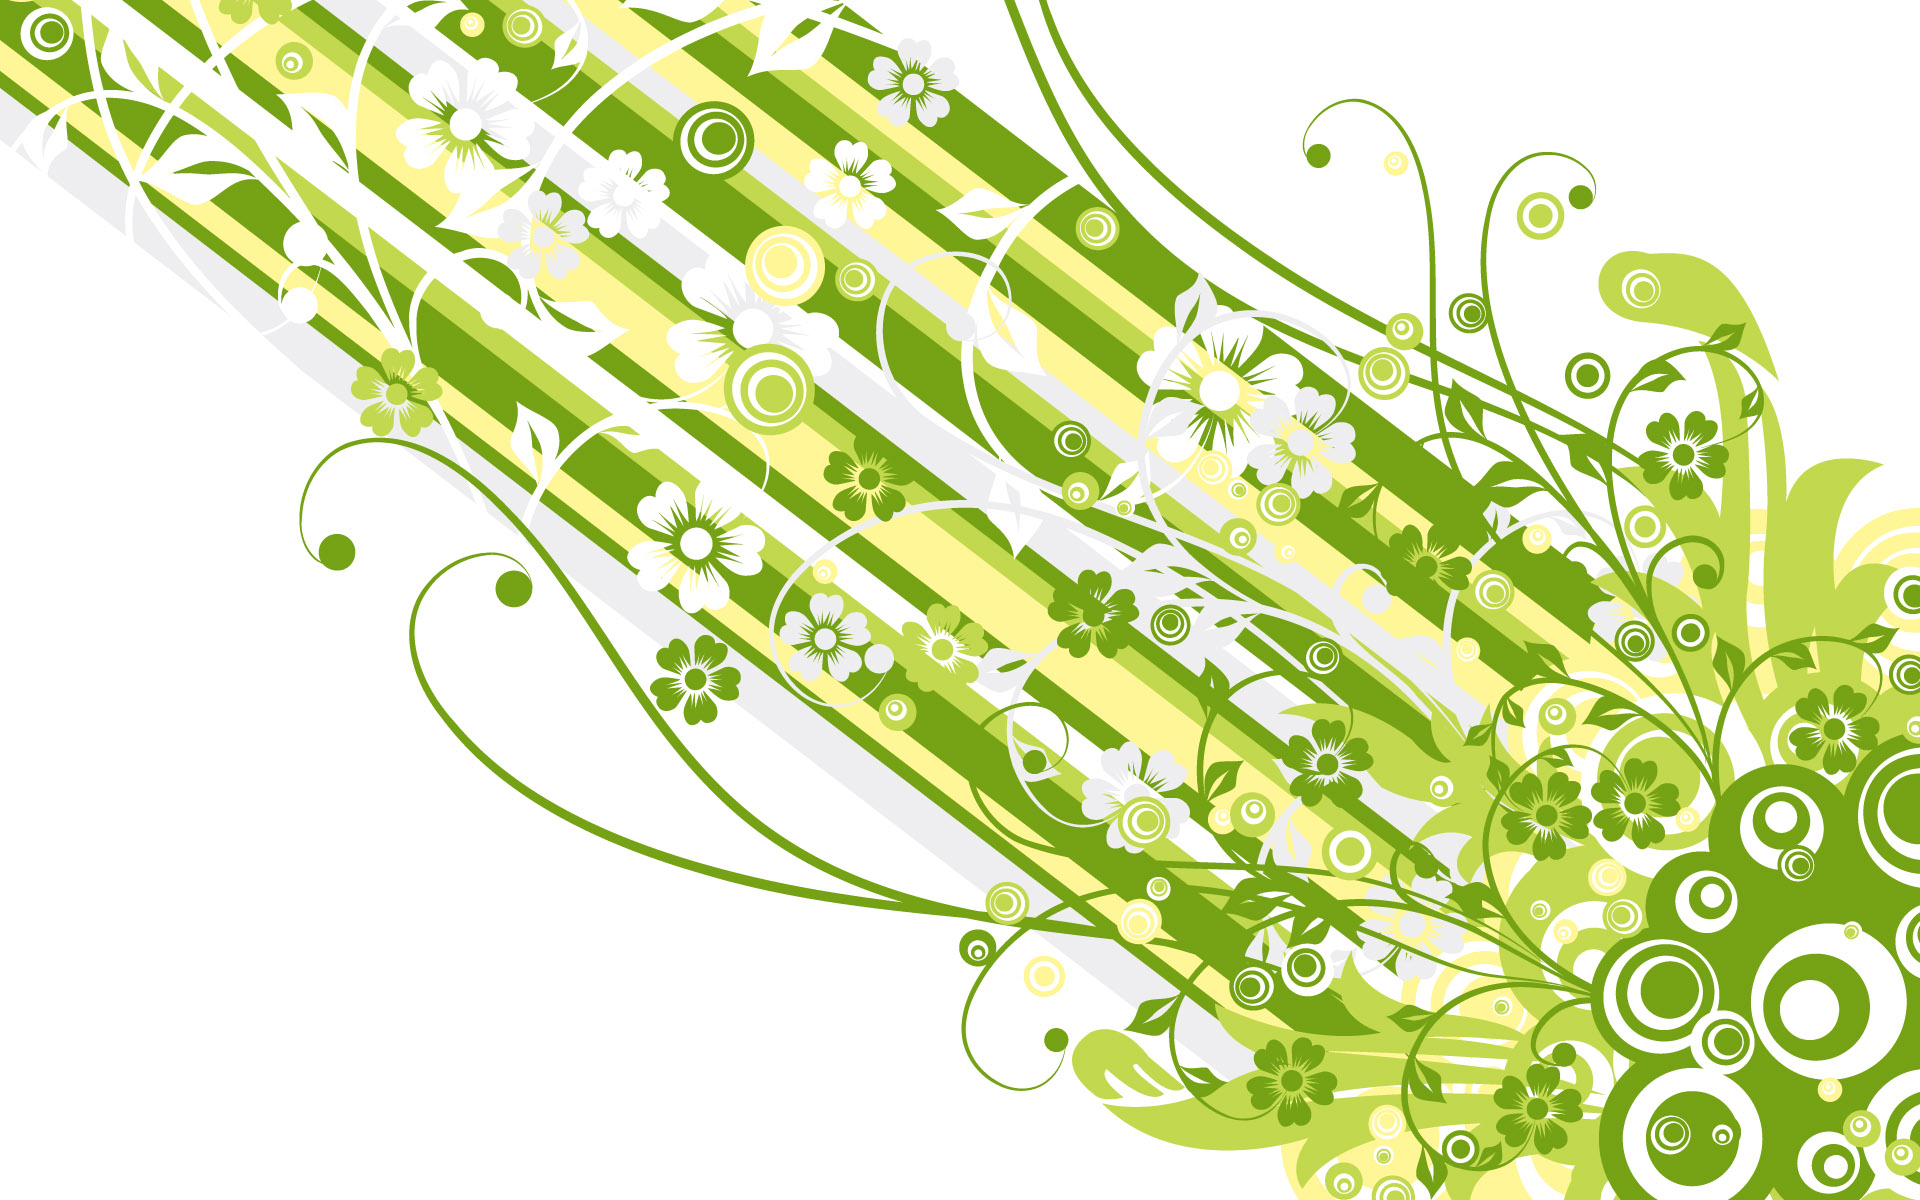 Green Vector Design 364.1 Kb